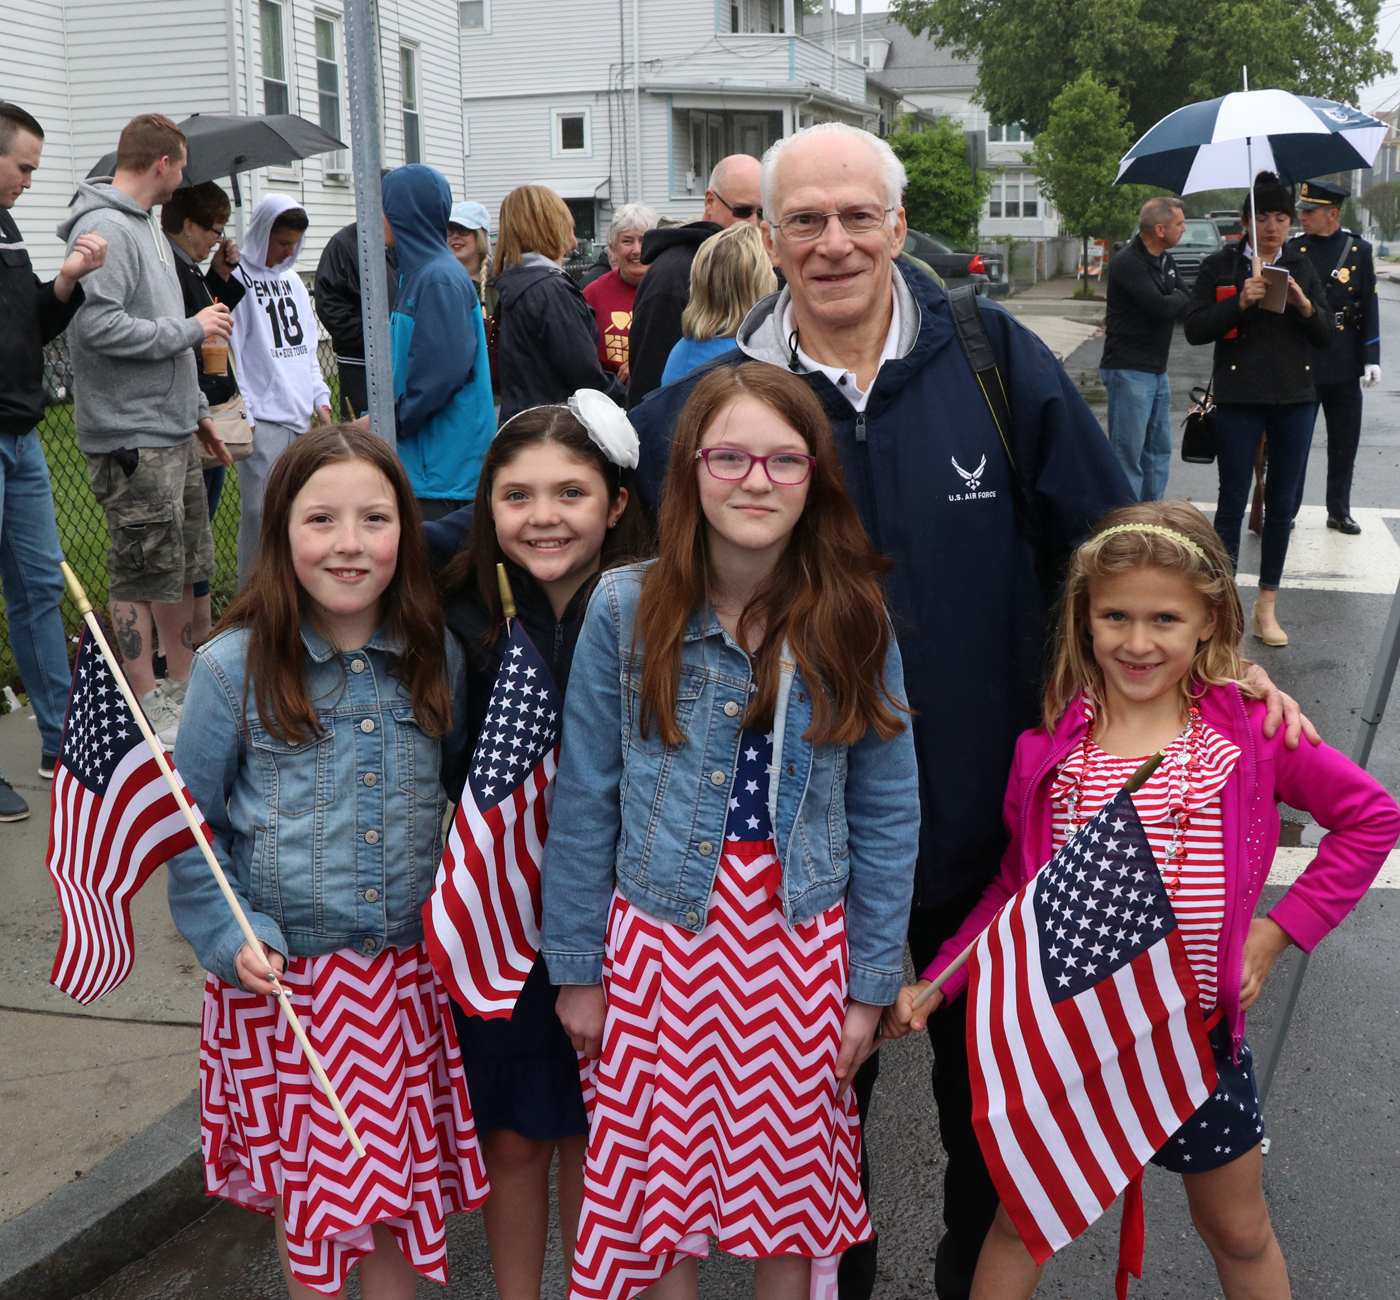 Former Malden Director of Veterans Services and family member John Webster with his grad daughters, Deirdre Marcella, Sienna Piland, Mary Marcella, Olivia Piland.